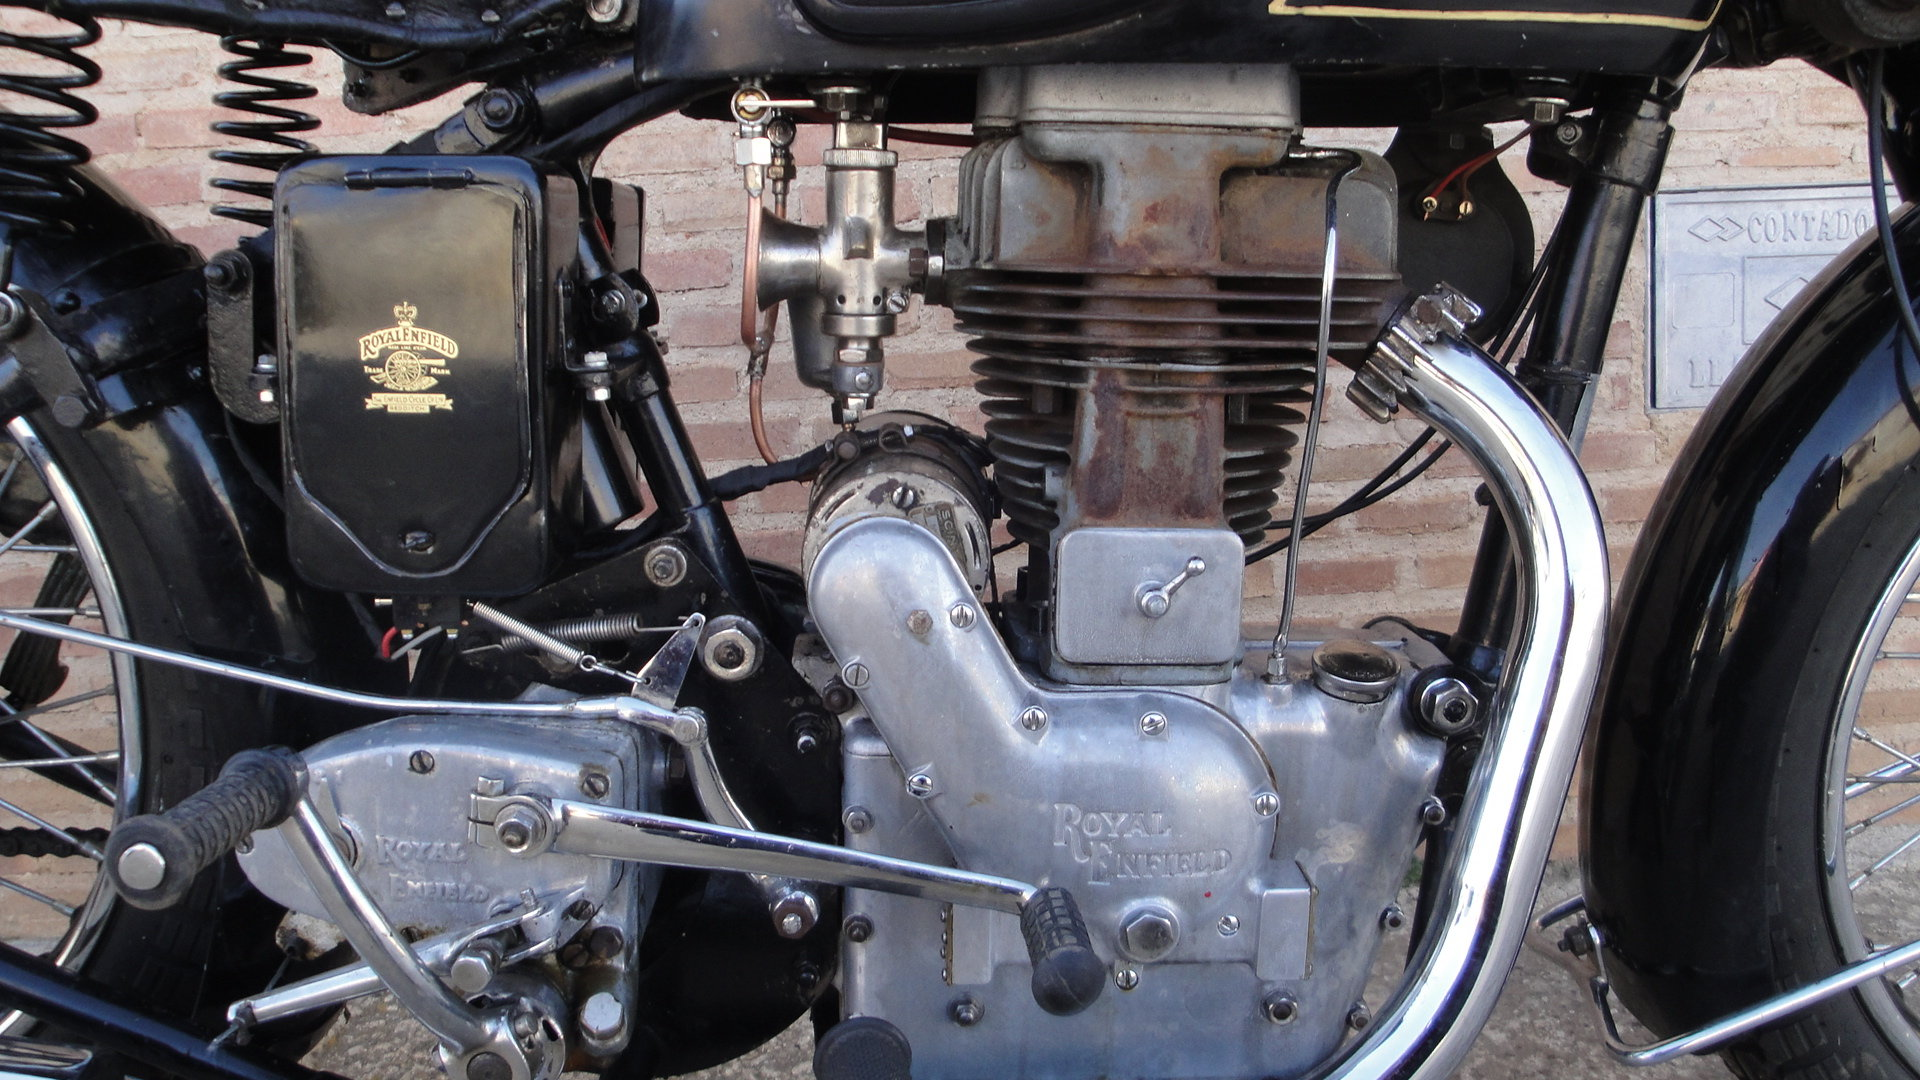 ROYAL ENFIELD J 500 OHV COMBINATION YEAR 1936 For Sale (picture 4 of 6)